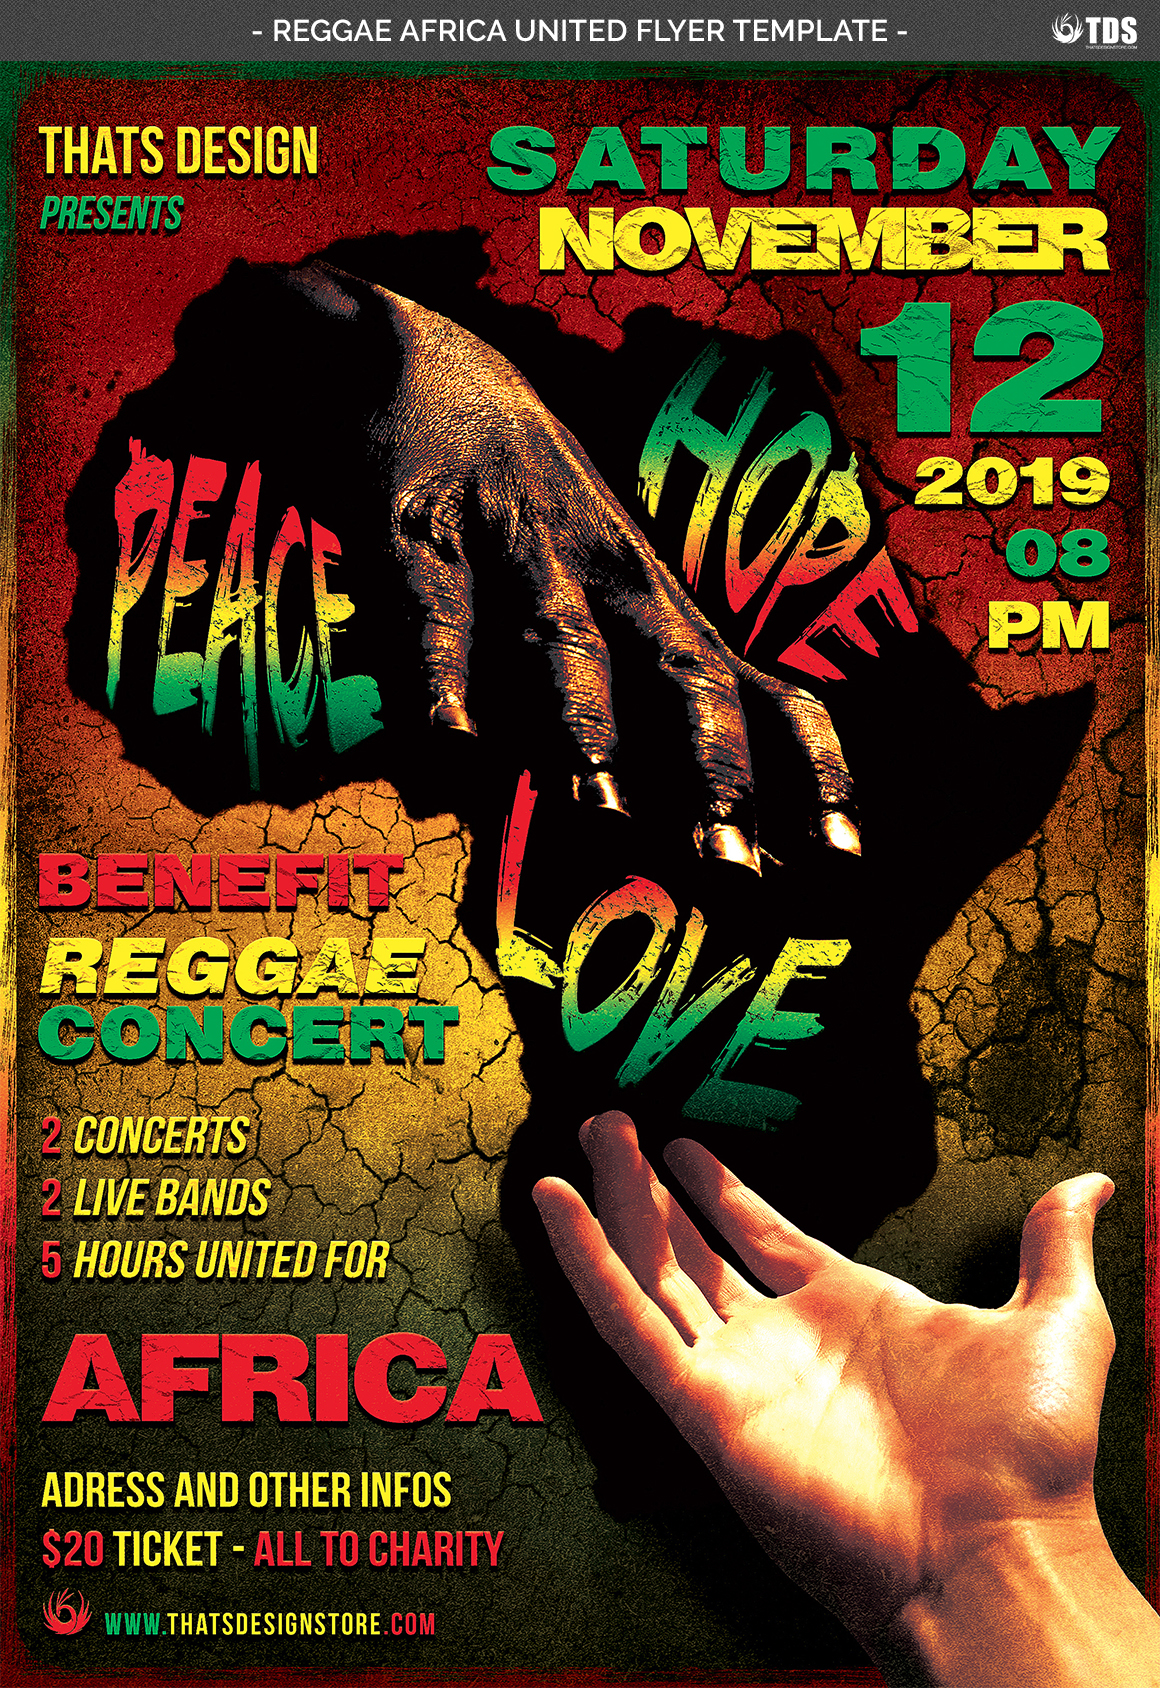 Reggae Africa United Flyer Template  example image 4